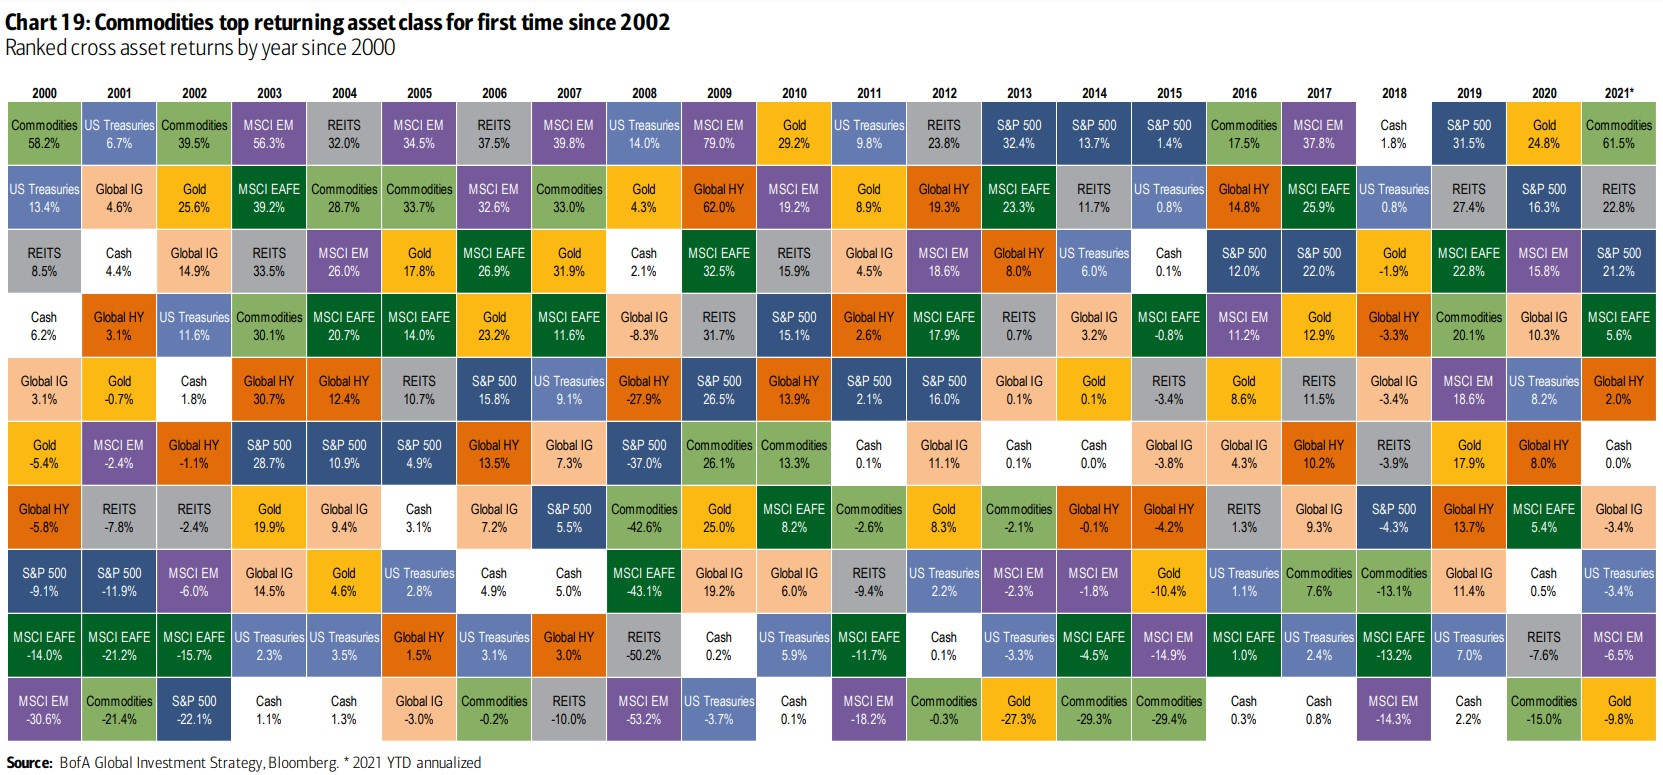 COMMODS TOP ASSET CLASS BY RETURNS FOR FIRST TIME